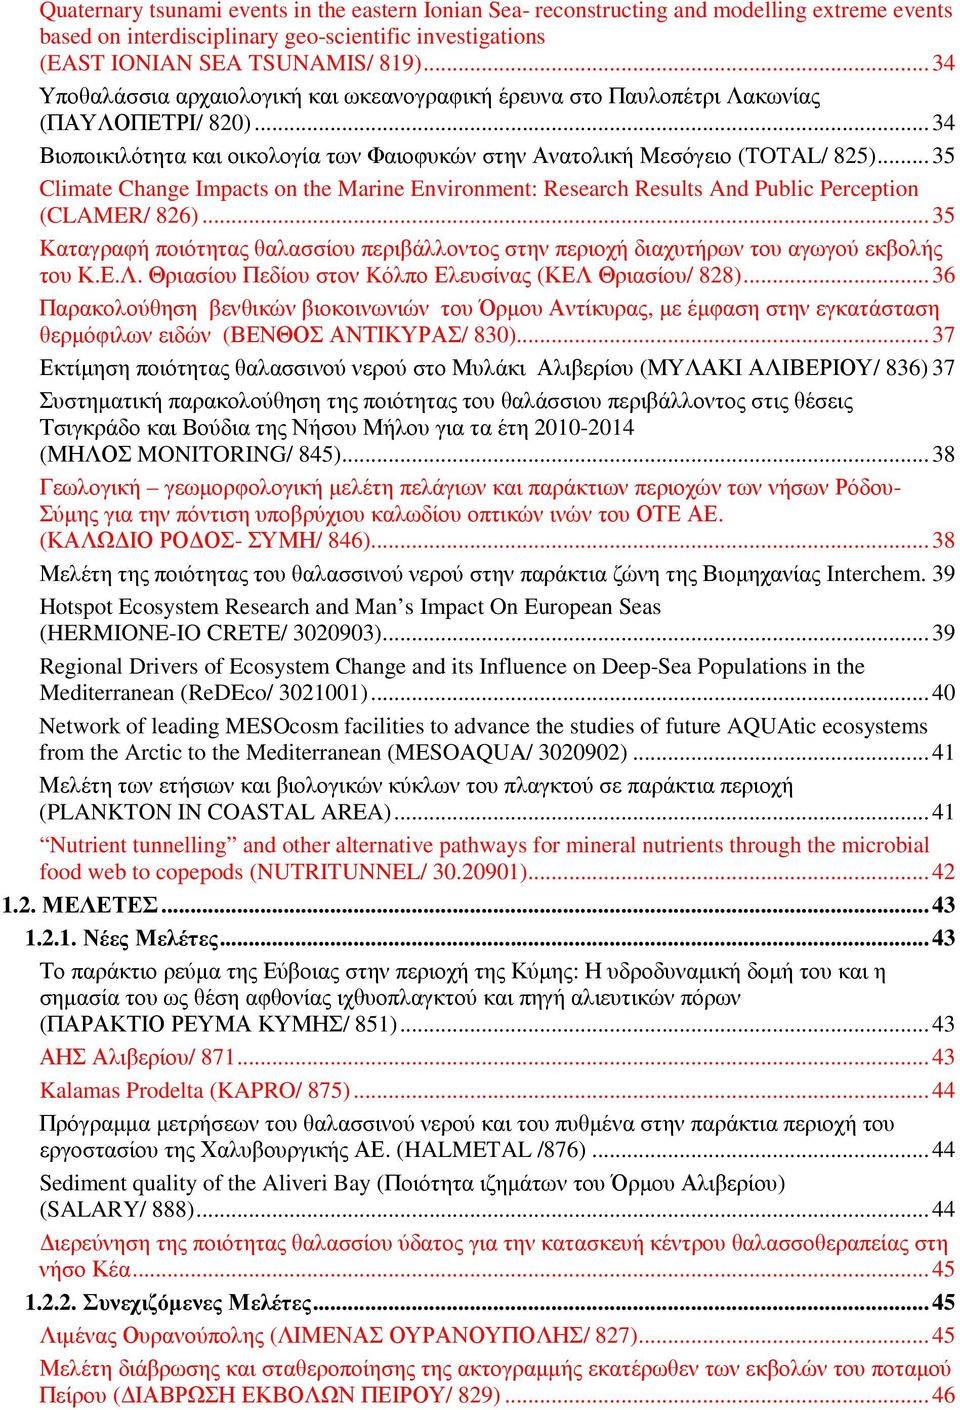 .. 35 Climate Change Impacts on the Marine Environment: Research Results And Public Perception (CLAMER/ 826).